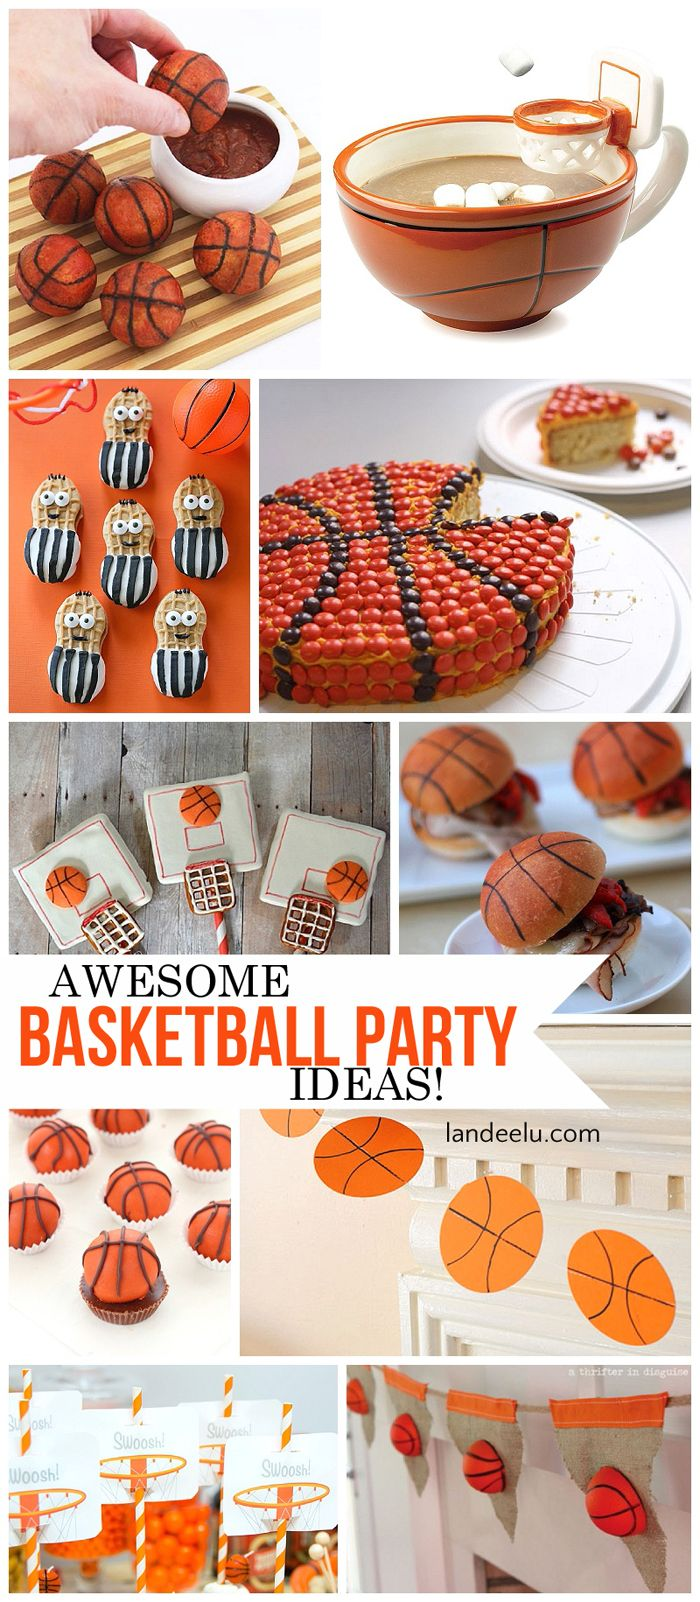 Awesome Basketball Party Ideas!  Perfect for a Basketball Team Party, birthday party or March Madness!    Printables - DIY Tutorials and amazing Recipes! landeelu.com